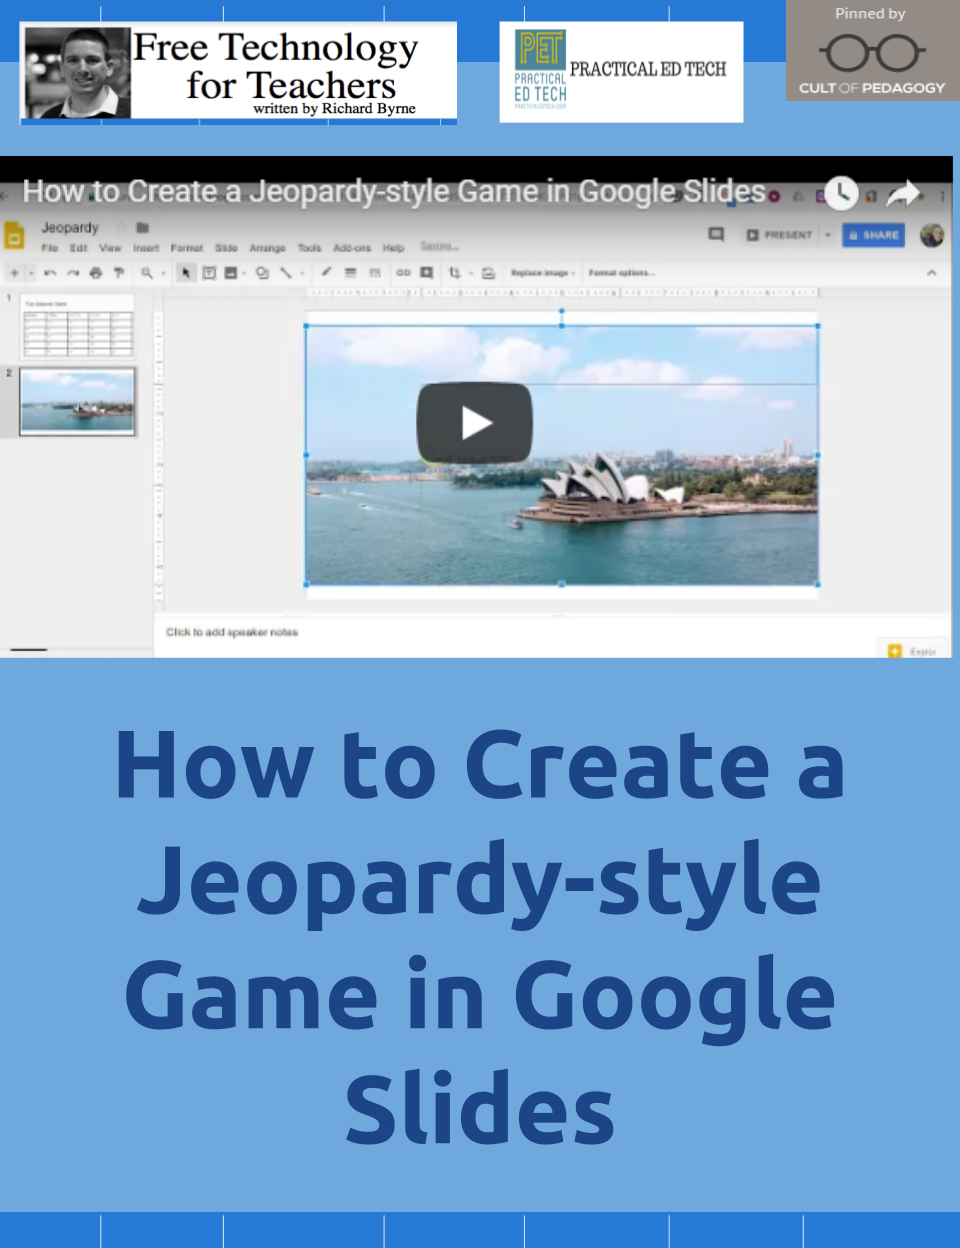 Playing Jeopardy Style Games Is A Still Popular Way To Host Review Sessions In Classrooms You Can Make Your Own That Include Pictures And